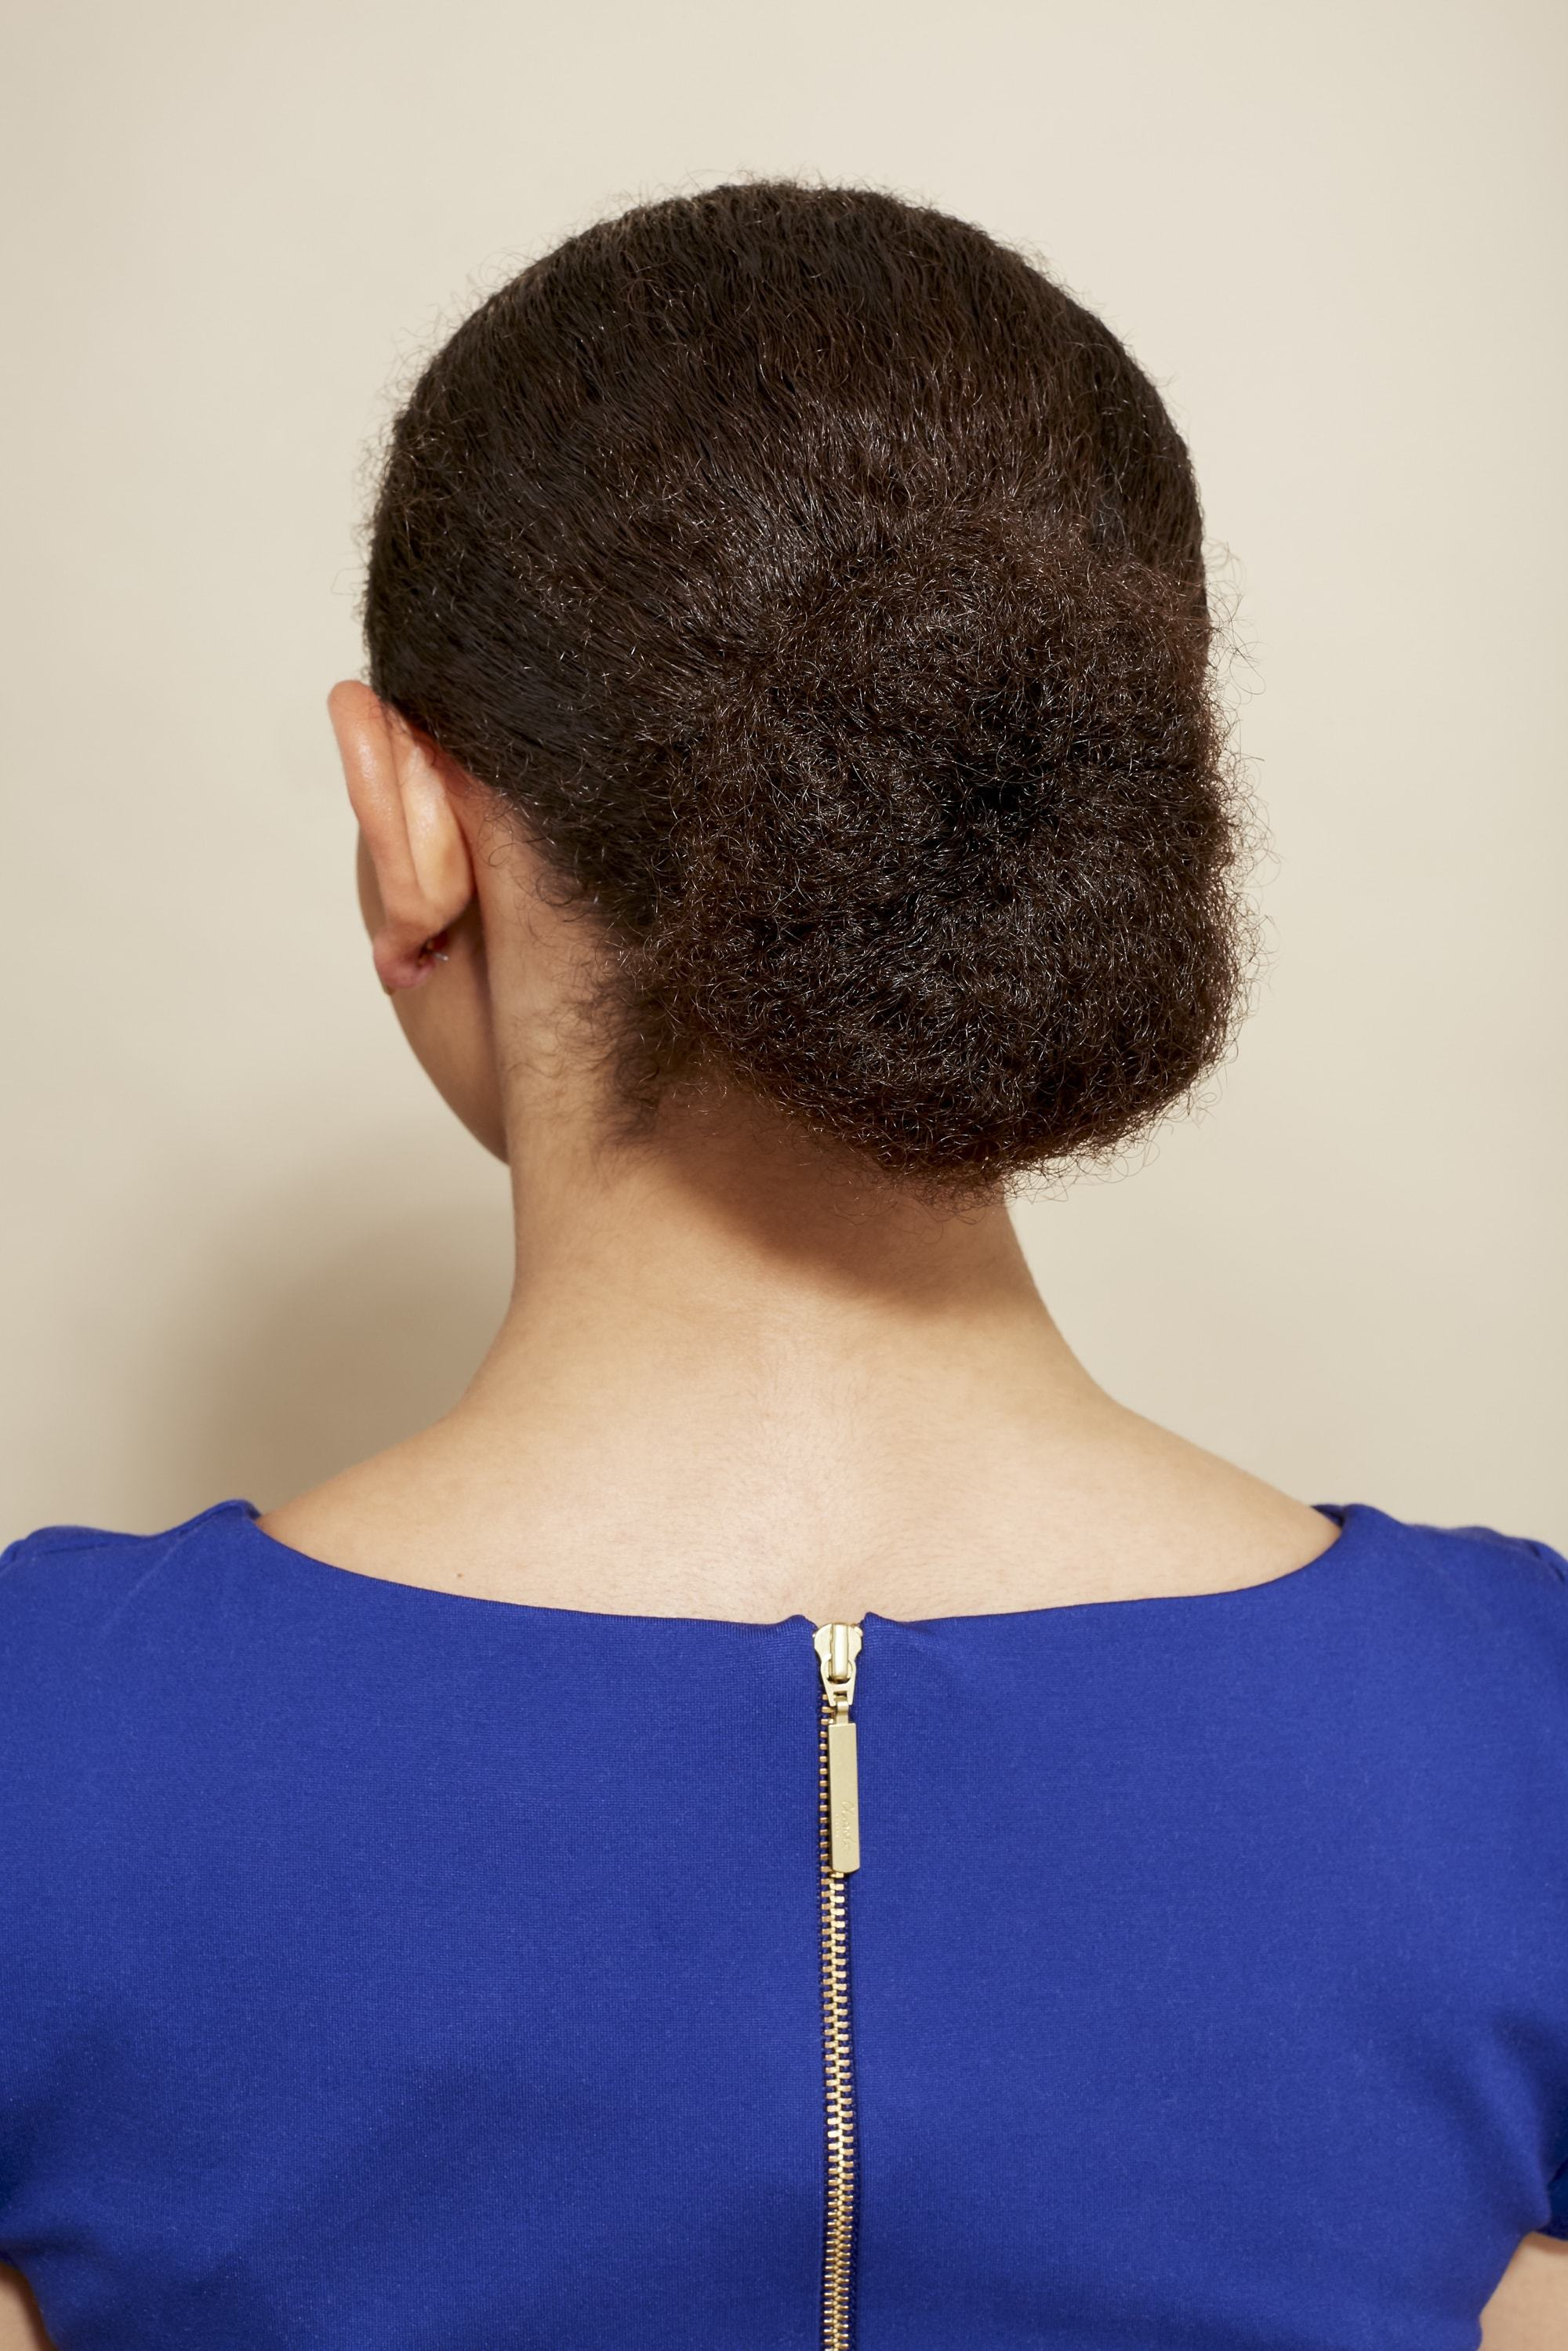 mixed race hair: close up back shot of a woman with natural medium brown hair styled into a smooth low bun, wearing a blue dress and posing in a studio setting